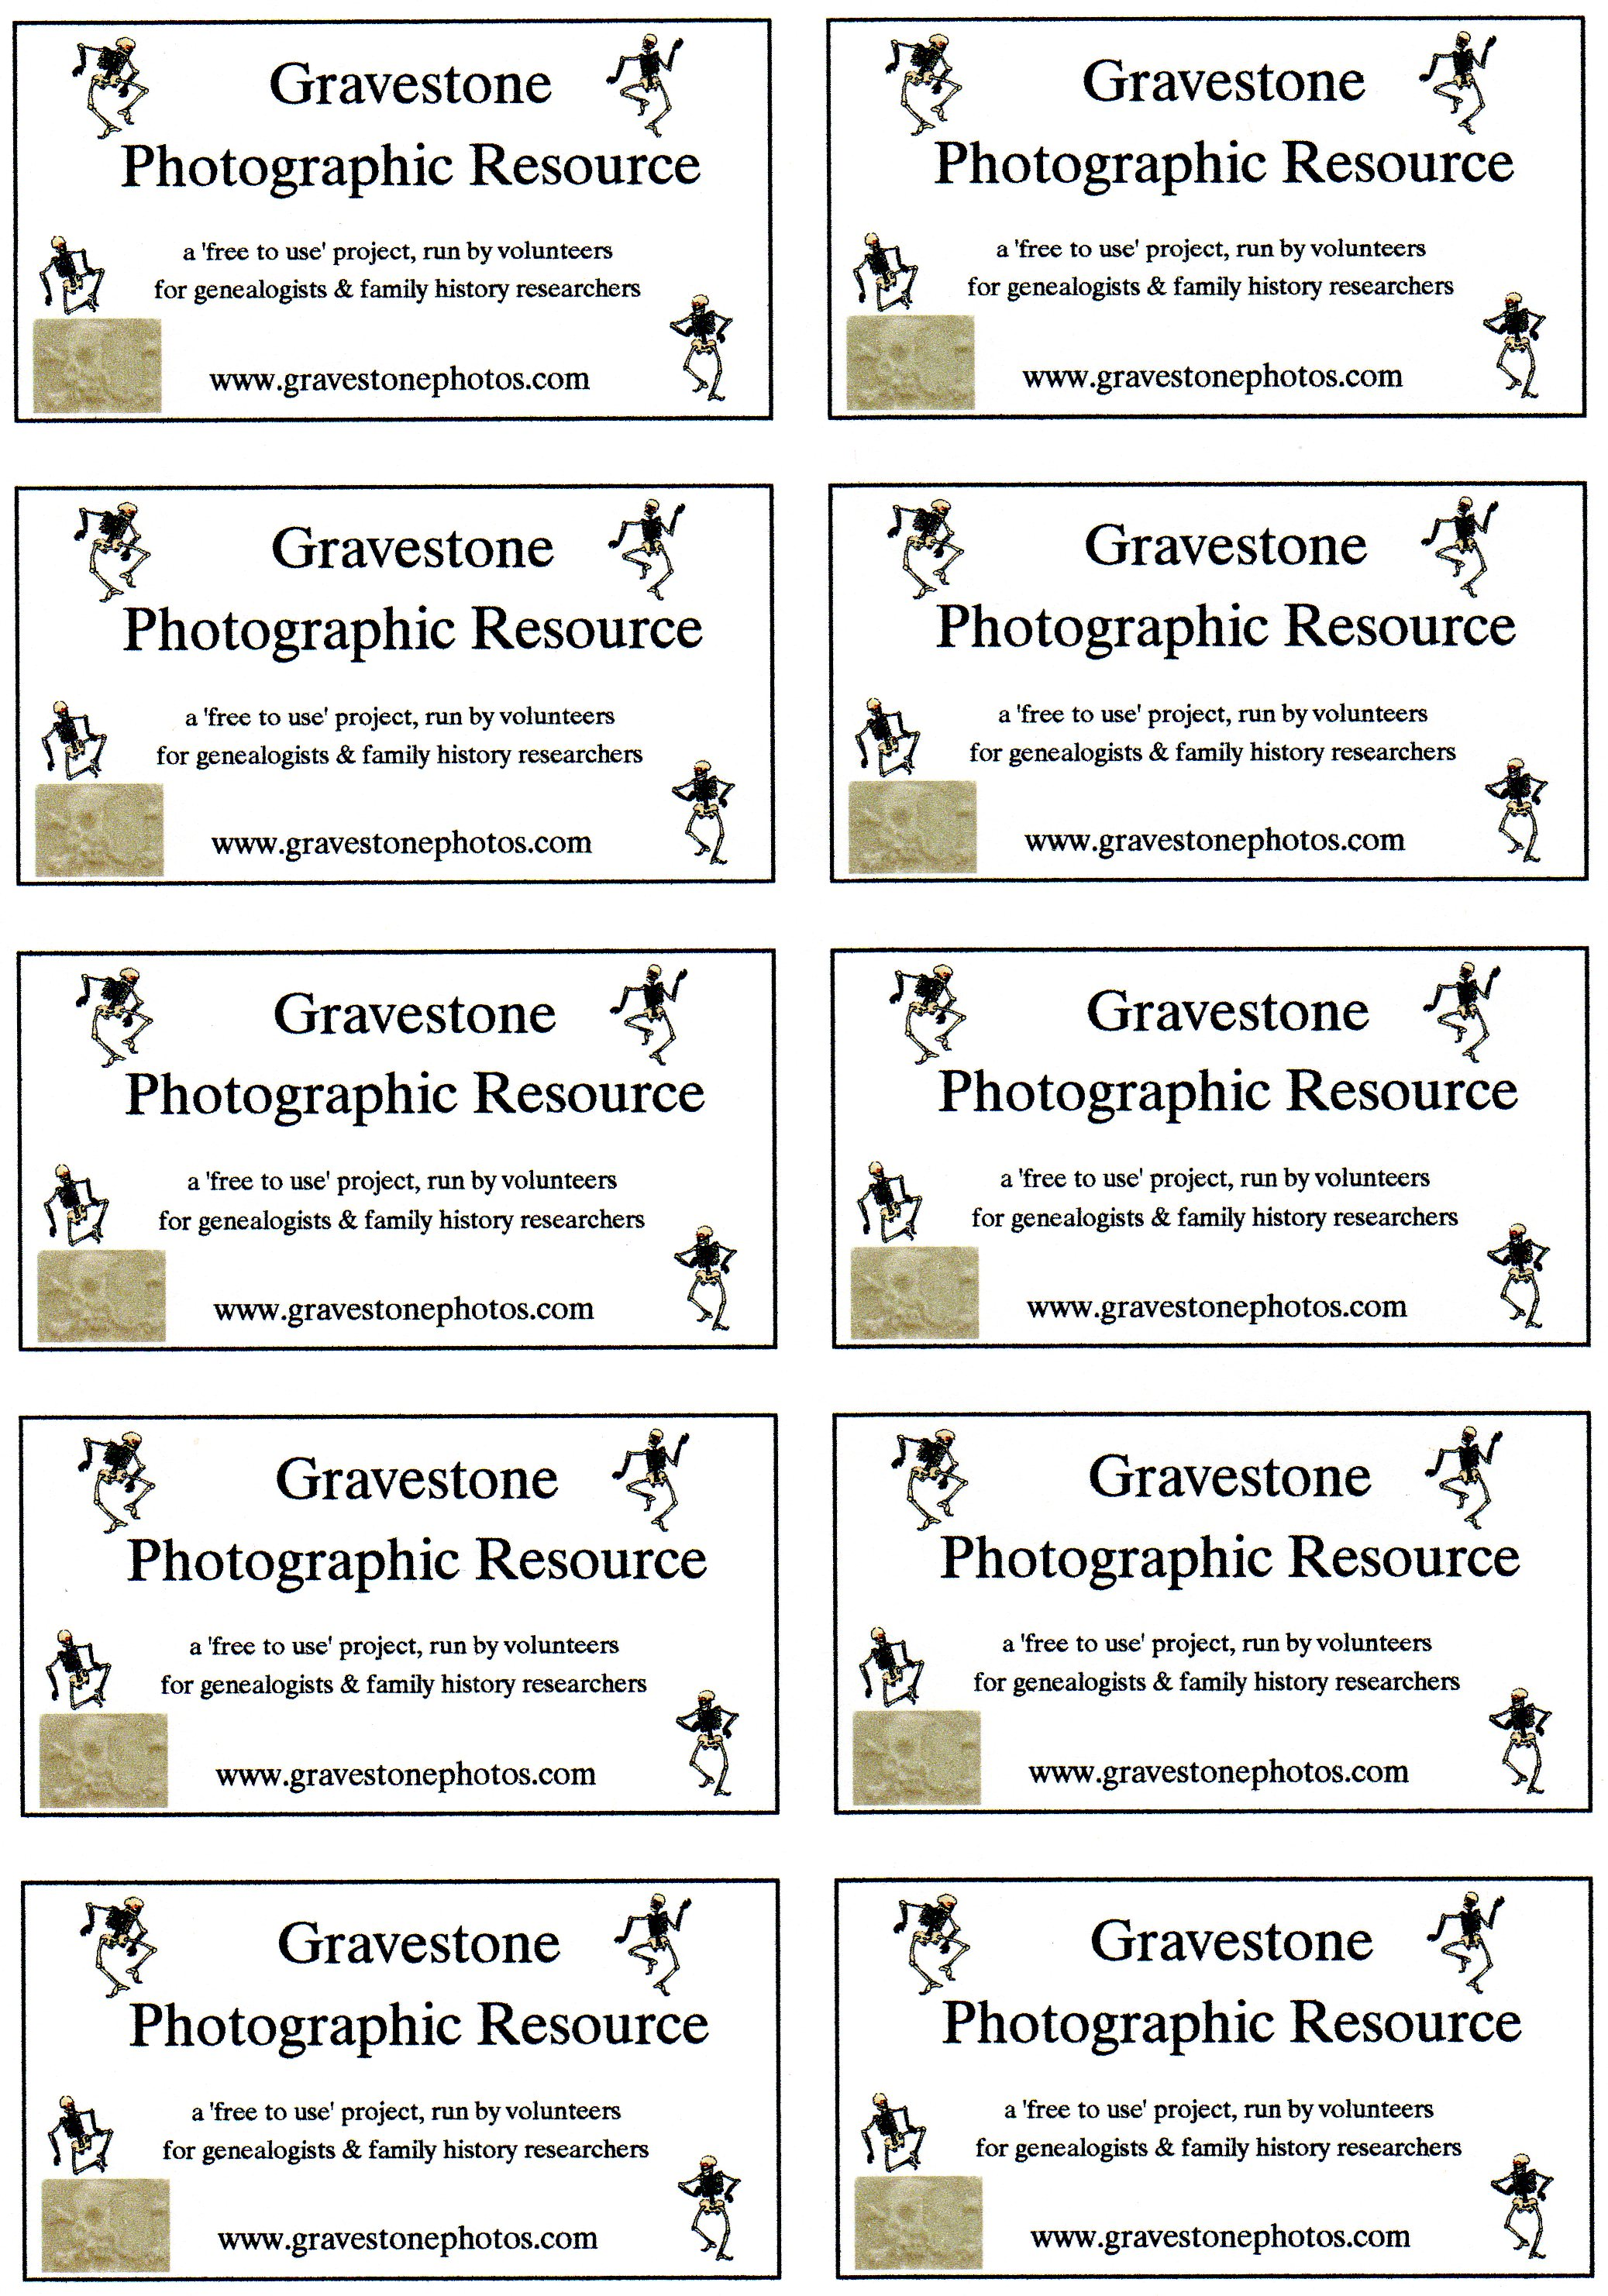 Gravestone Photographic Resource Project Downloads